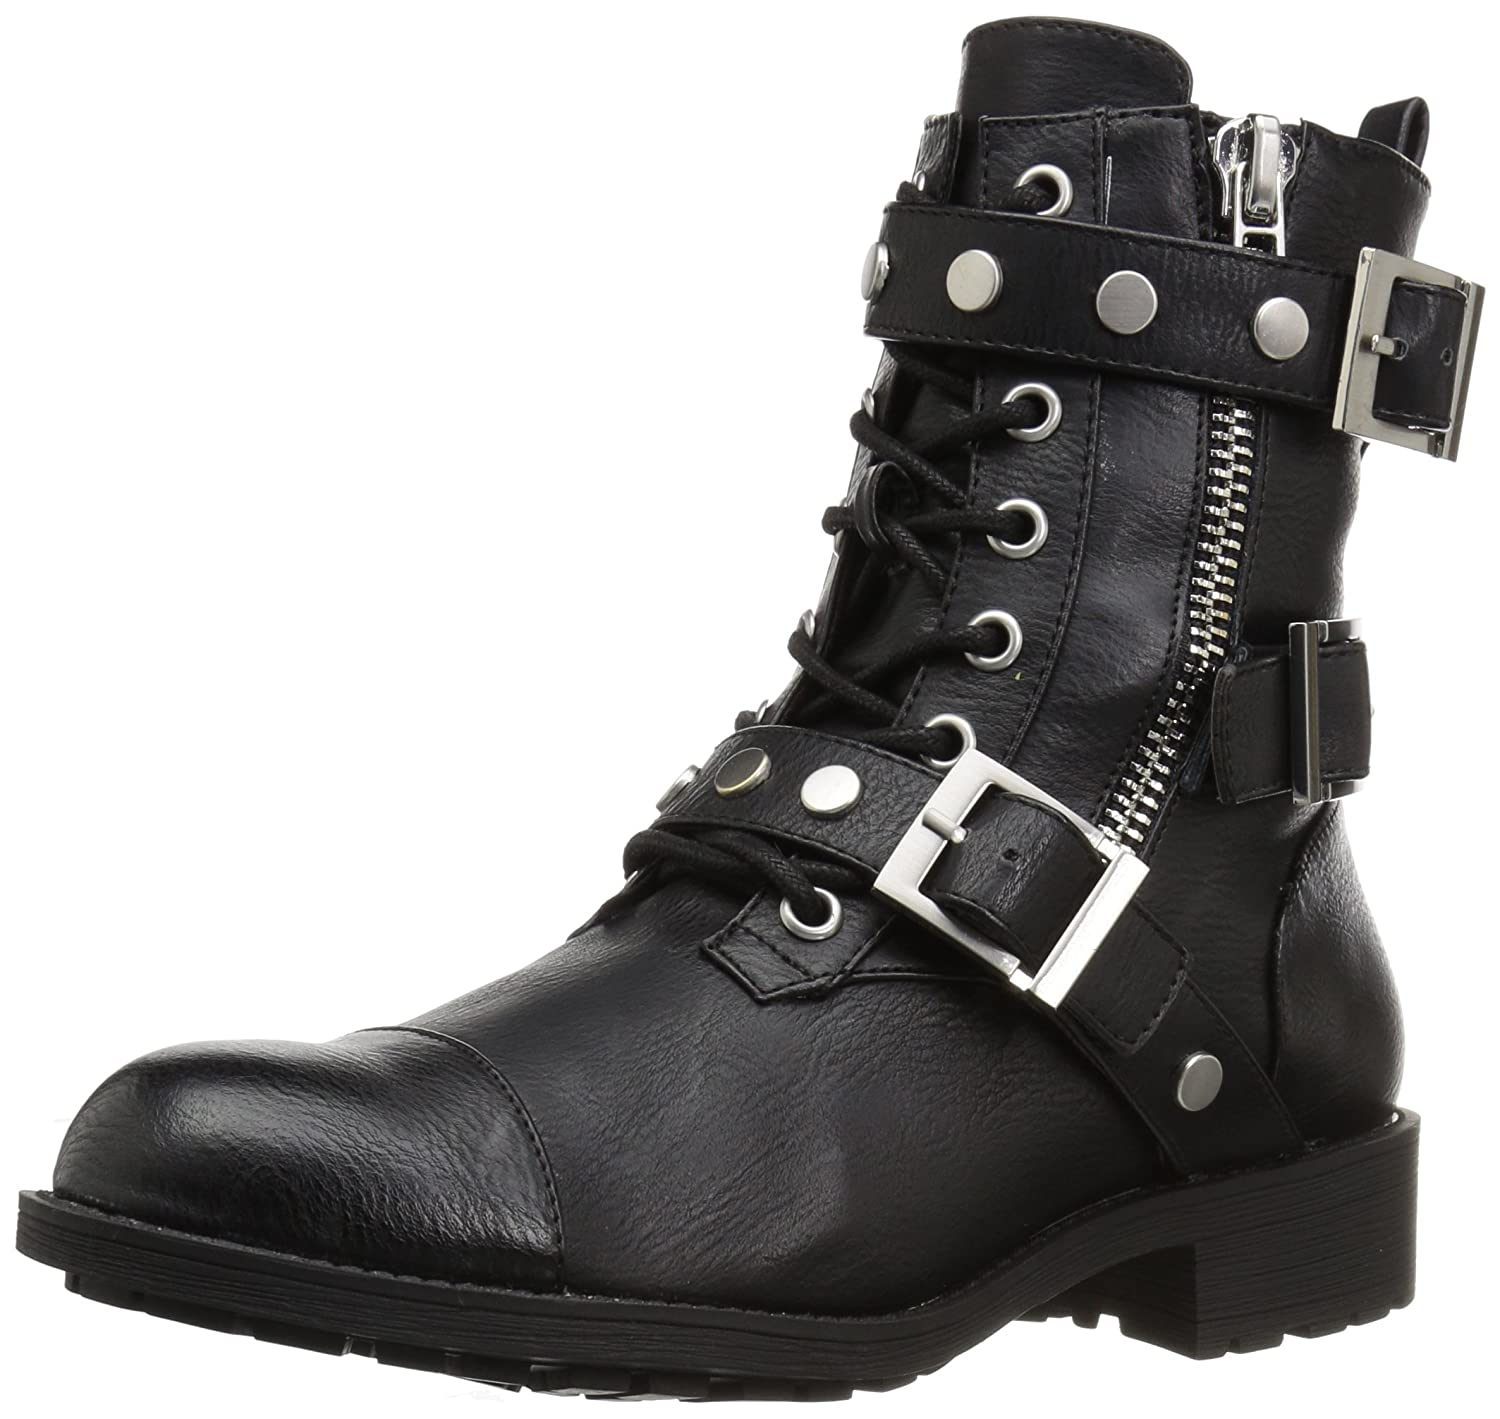 Style by Charles David Women's Caden Motorcycle Boot B06XYSTD74 6 B(M) US|Black